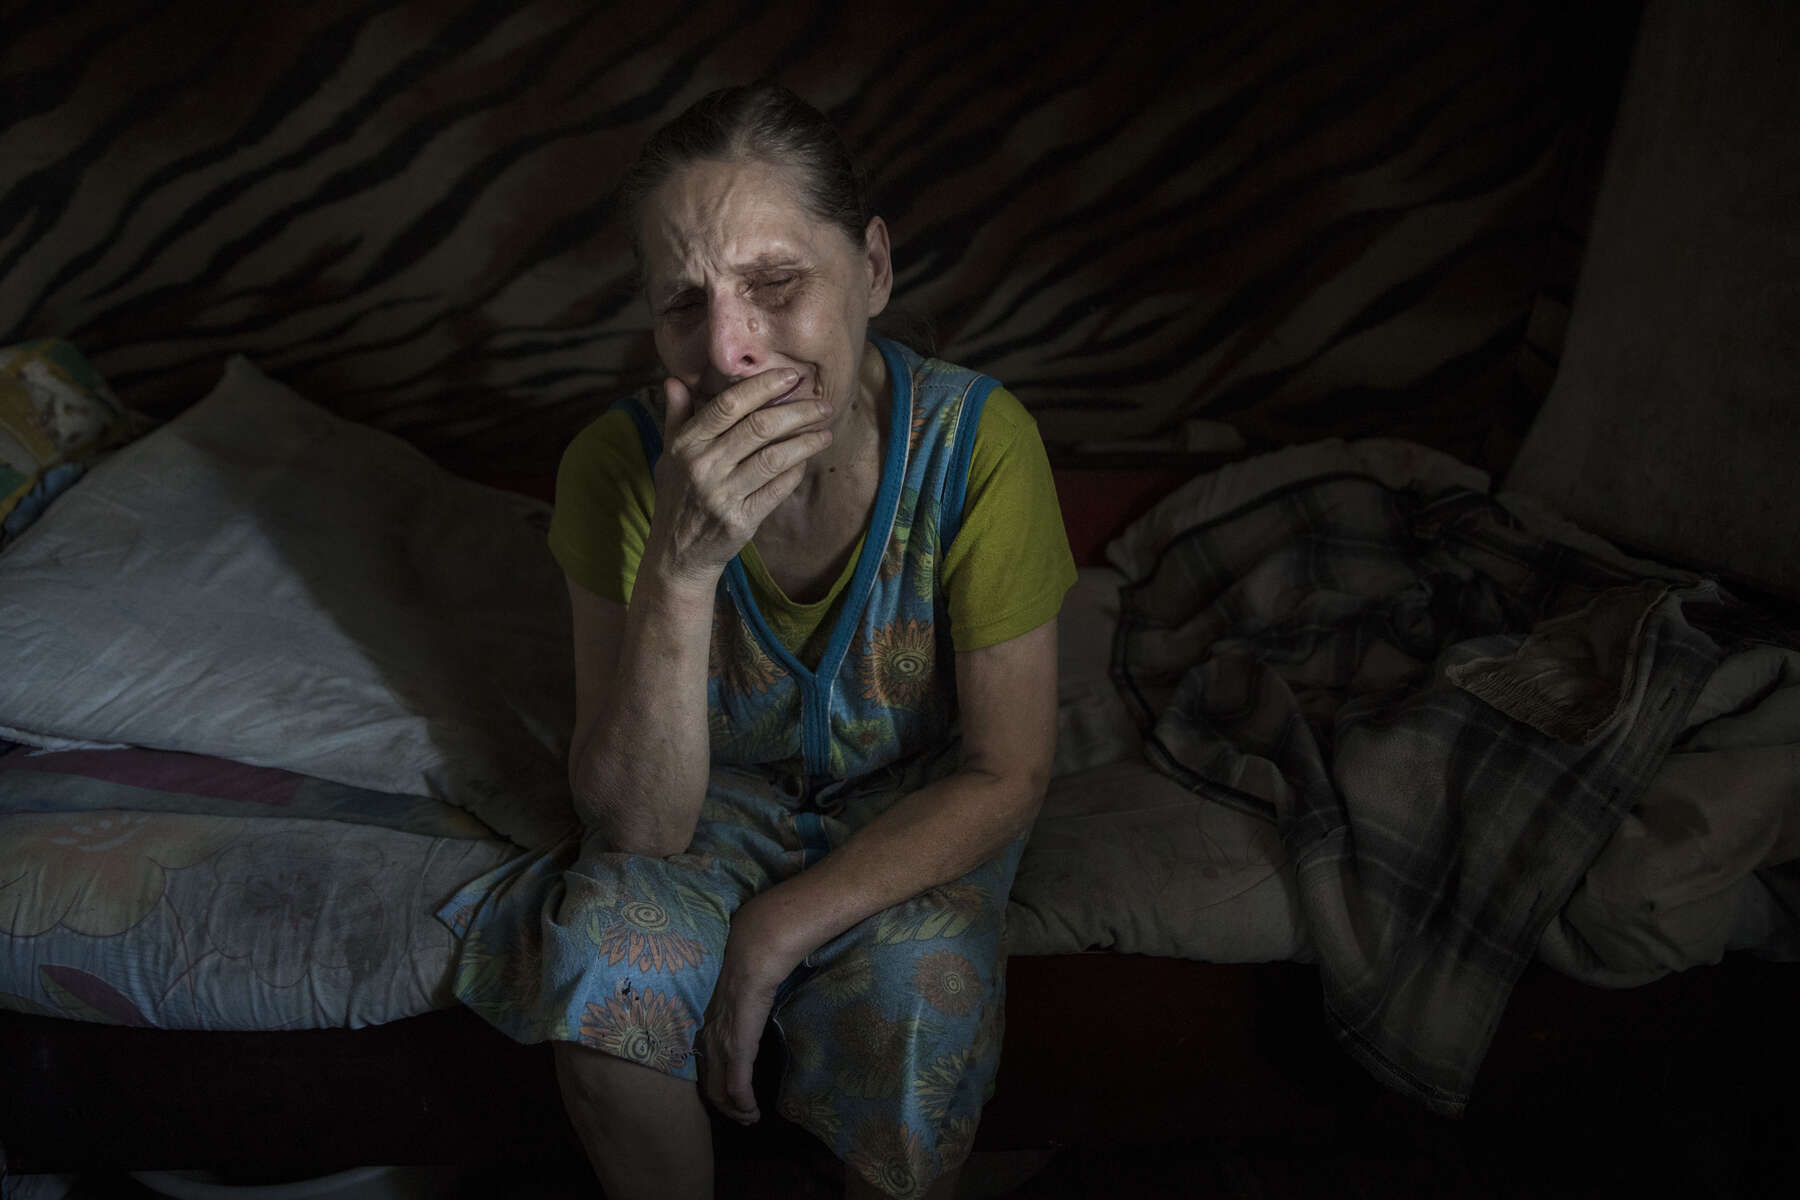 Avdiivika: Elena Parshyna,age 66, is blind and lives alone,feeling depressed and lonely after her husband had a heart attack in April. She says that she cries often now. Her son also died late in 2017 from the same fate. To make matter worse, Both were buried in a small cemetery that is mined and now too close to the military positions so she never can go visit the graves. The home was shelled last year, still damaged but Elena refuses to leave. Her remaining family - daughter and a sister all live on the other side of the contact line in Makeyevka city controlled by pro-Russian separatists. BANGKOK - MARCH  :  in Taipei, Taiwan on March 19, 2020. According to CDC current totals the Coronavirus ( COVID-19) has now effected 235,939 globally, killing 9,874. It has spread to 157 countries. (Photo by Paula Bronstein/Getty Images )